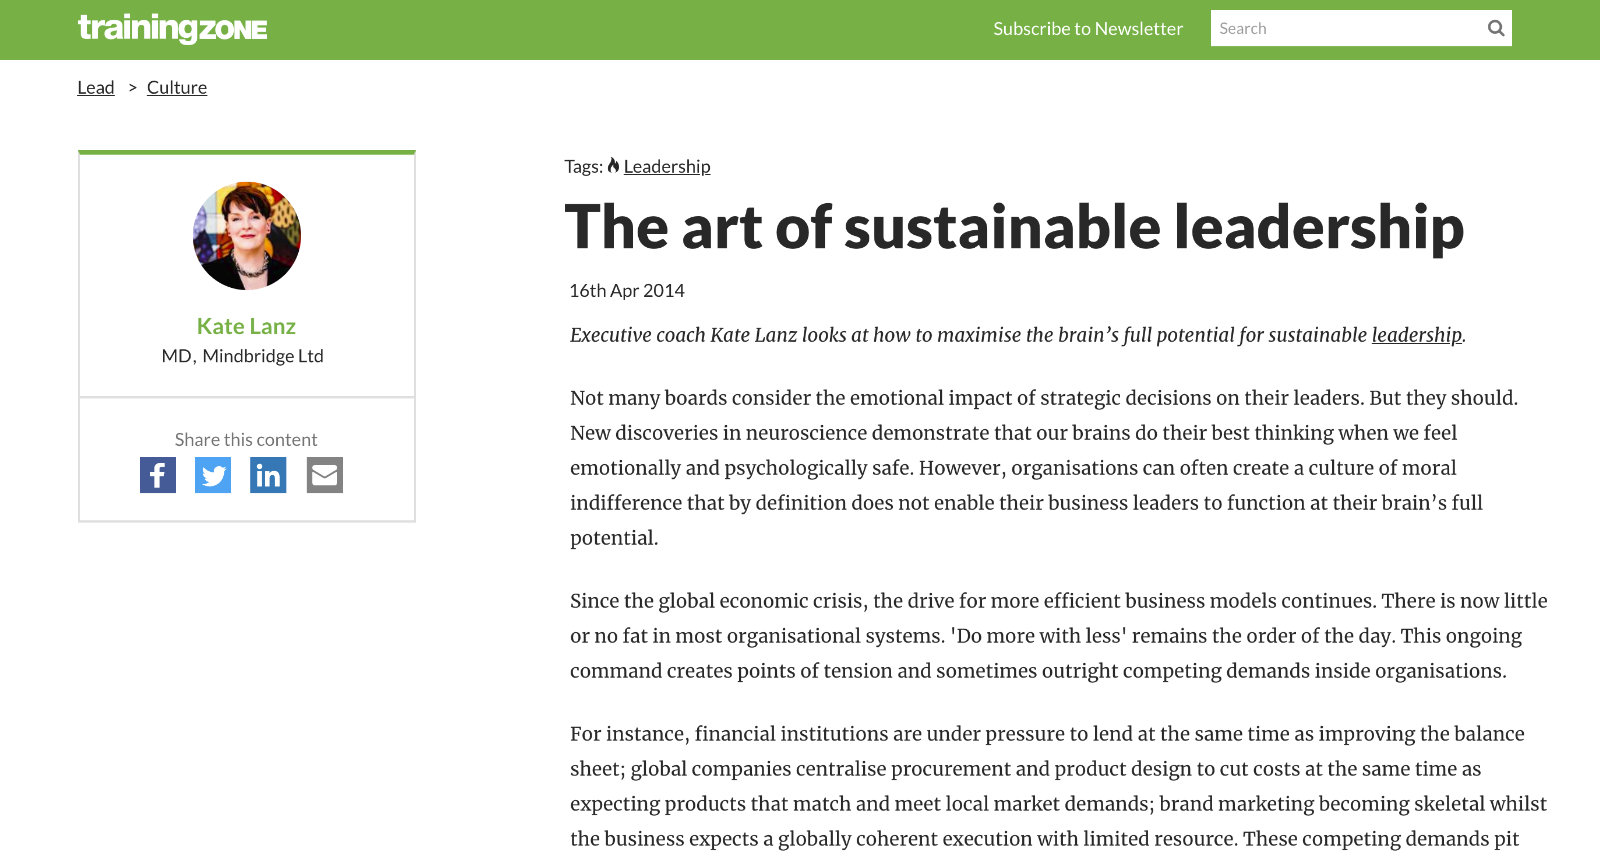 The art of sustainable leadership article in TrainingZone